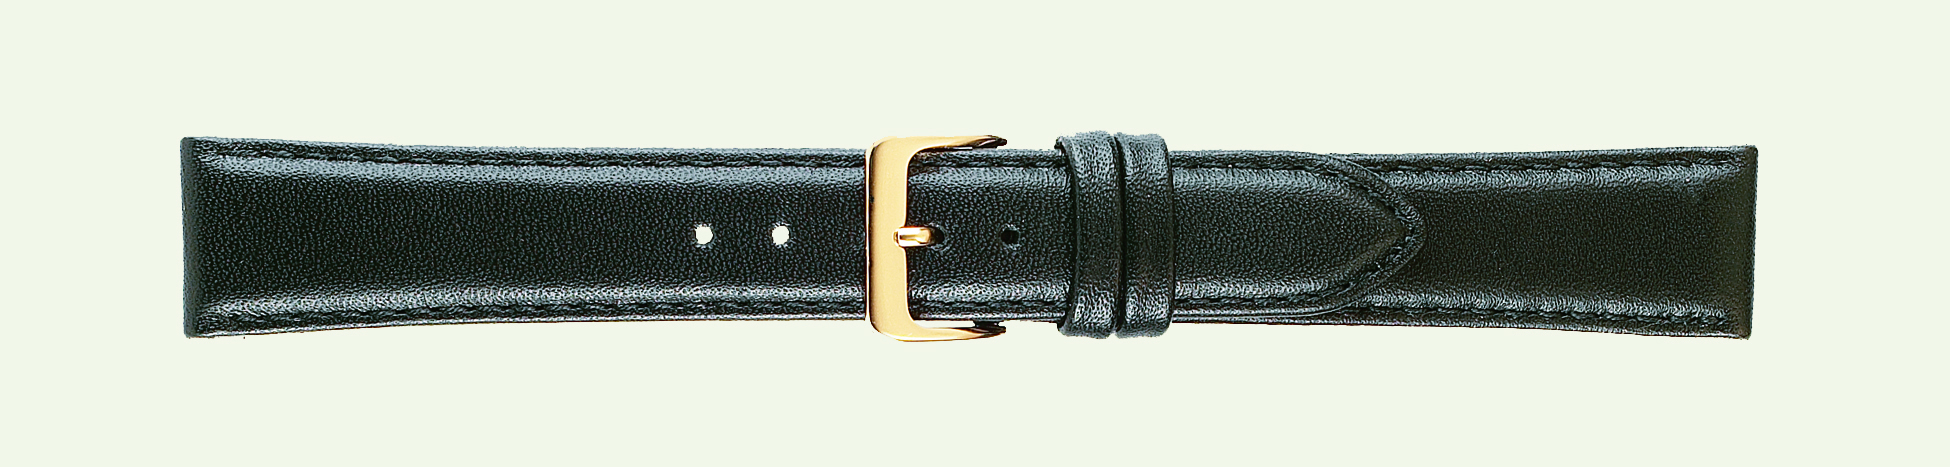 20MM Leather Band Black Classic Calf-0